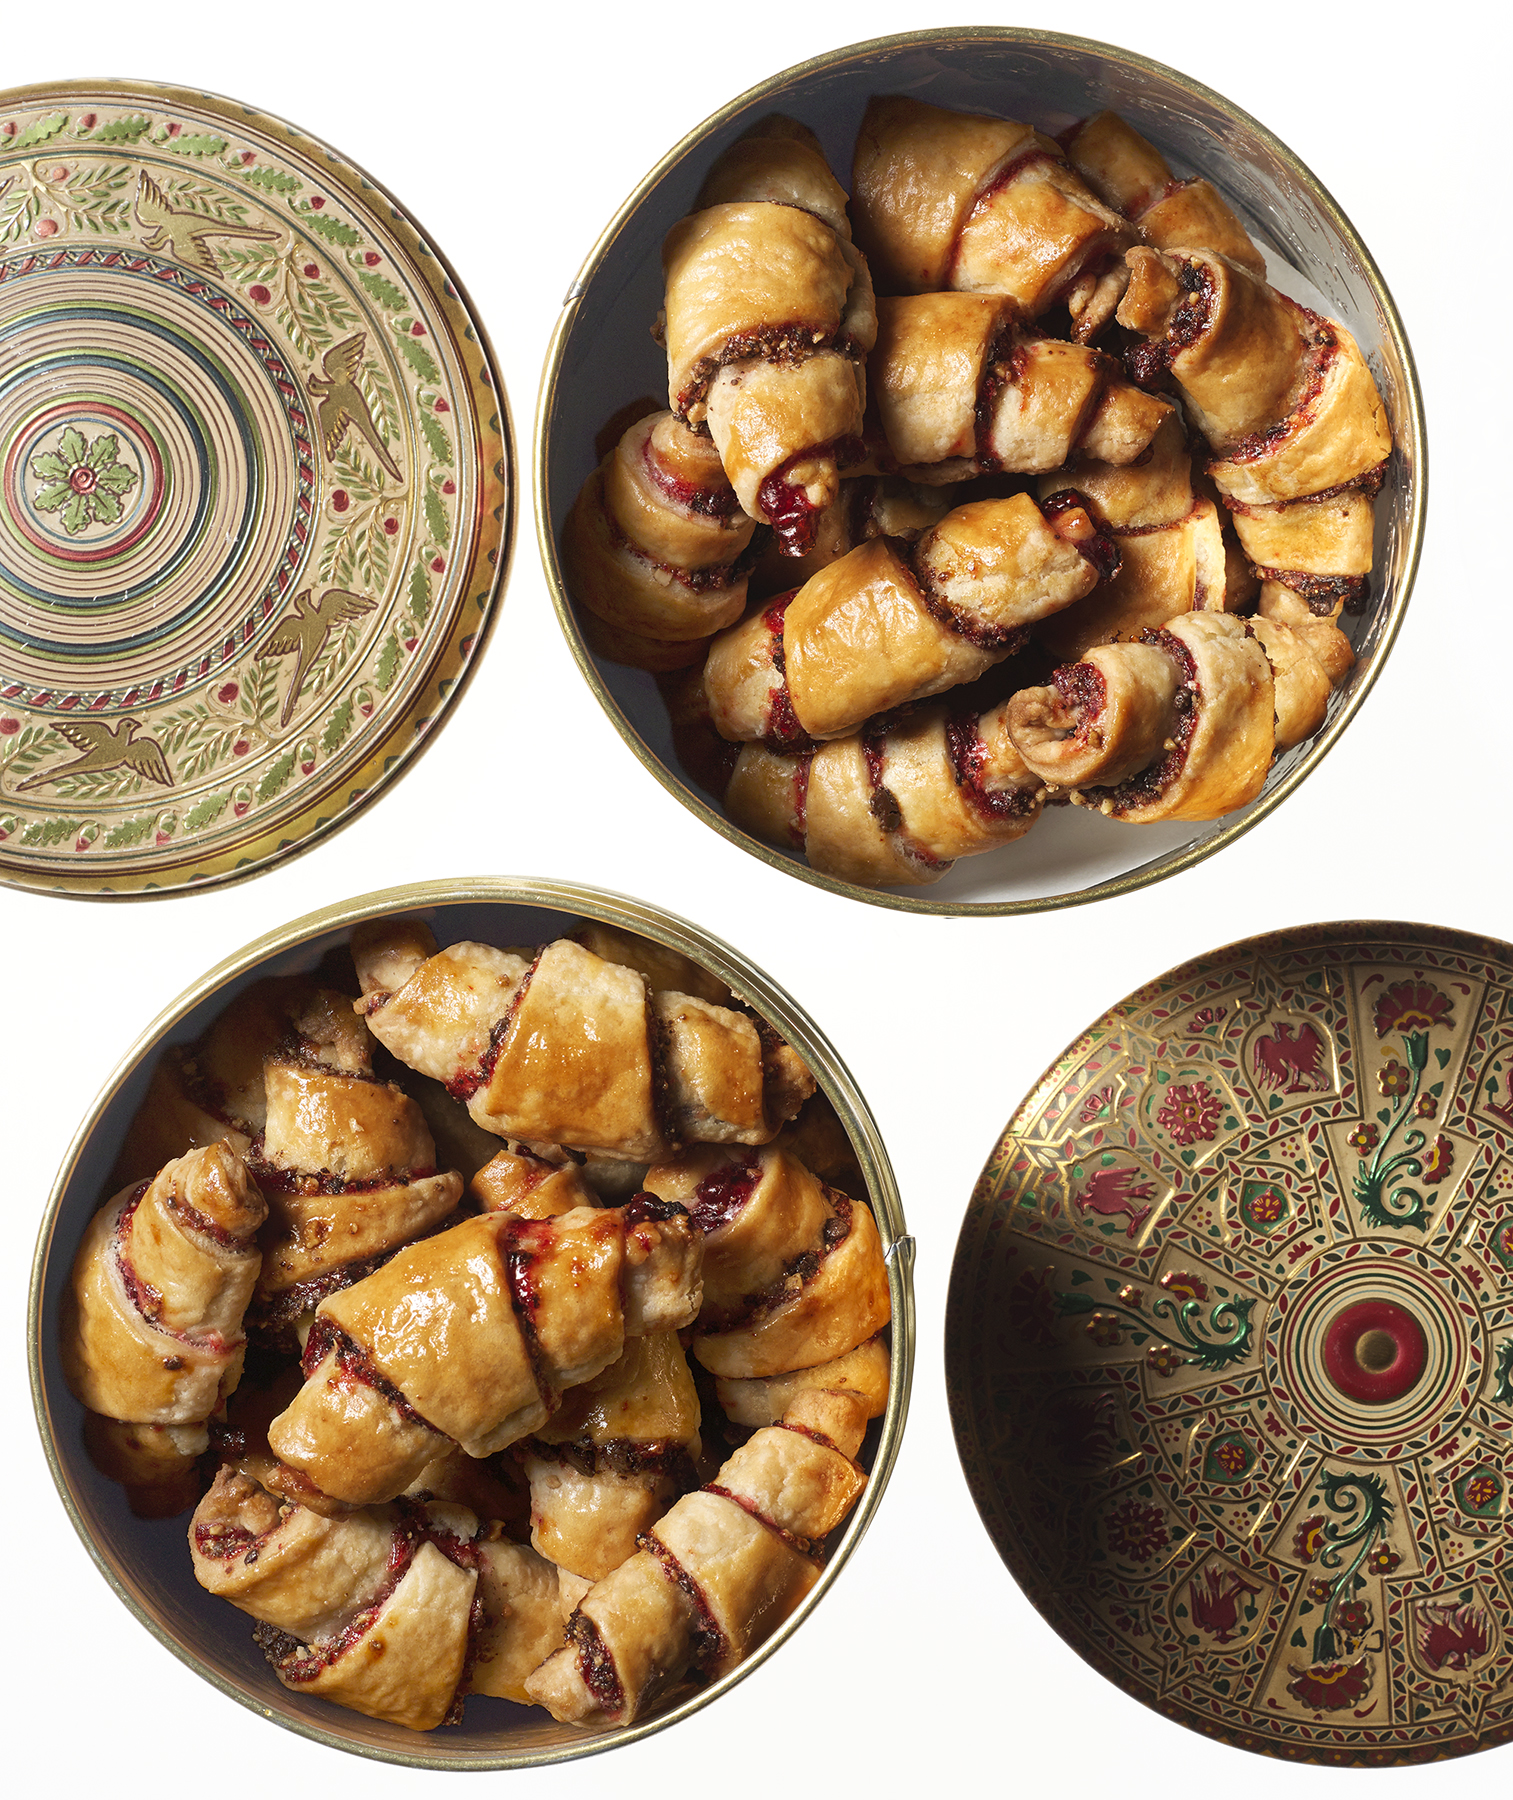 Chocolate, Raspberry, and Almond Rugelach